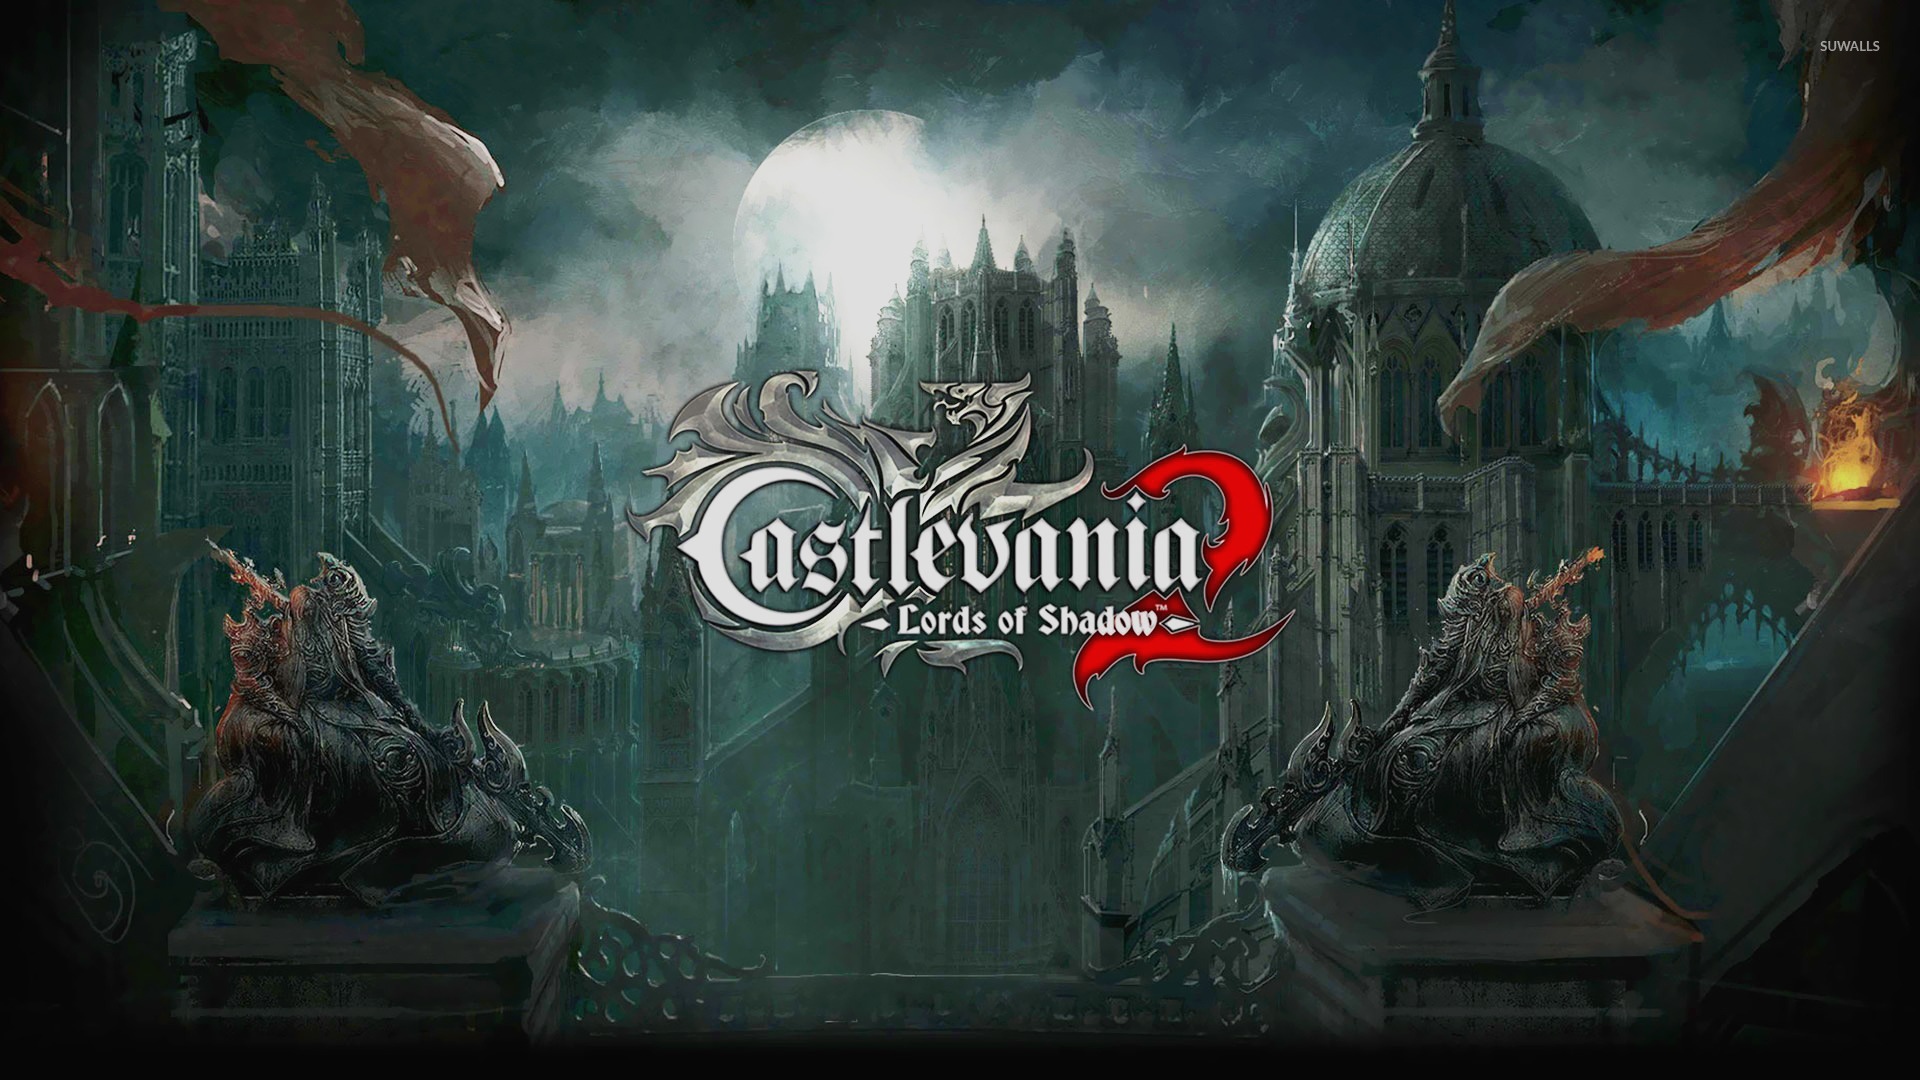 Castlevania Alucard Wallpaper Posted By Samantha Anderson